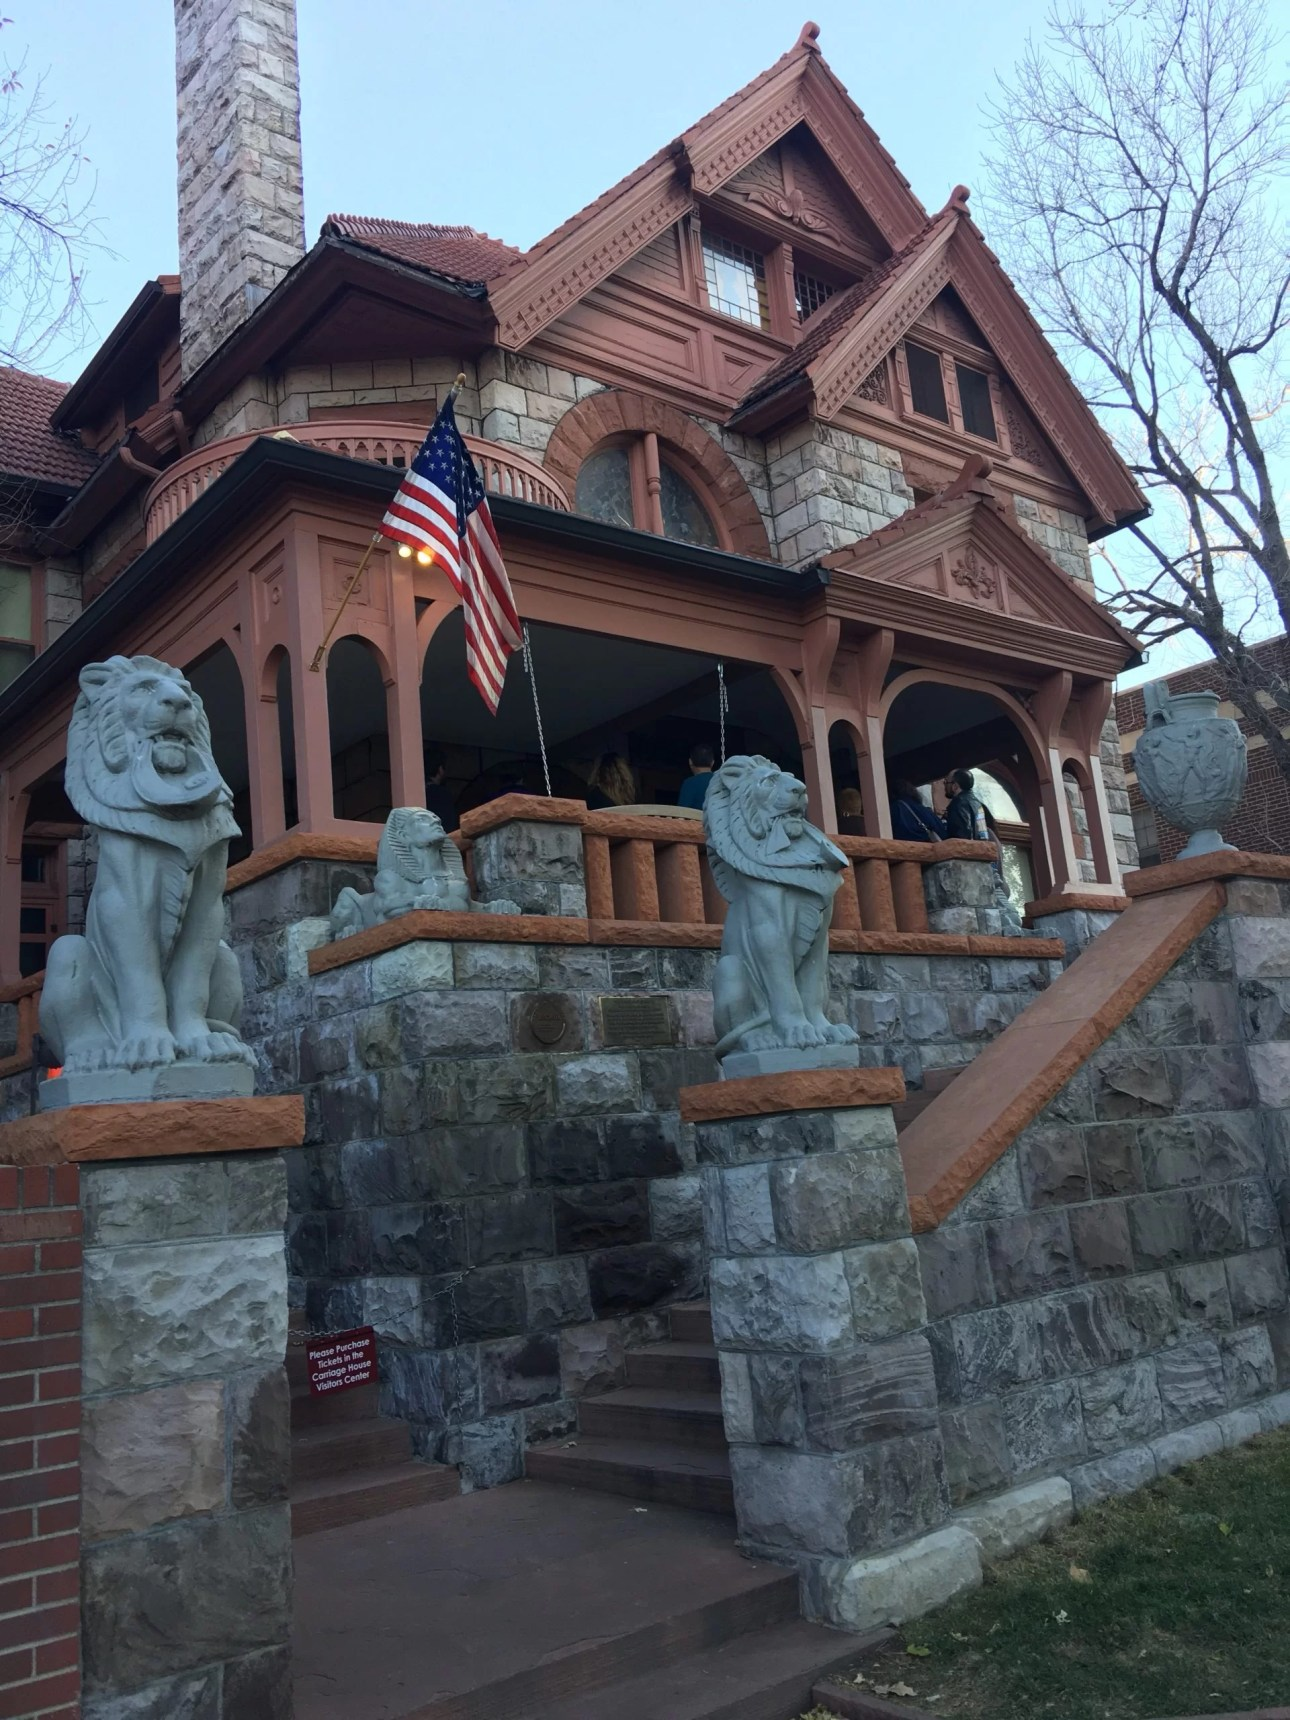 Exterior Molly Brown house in Denver